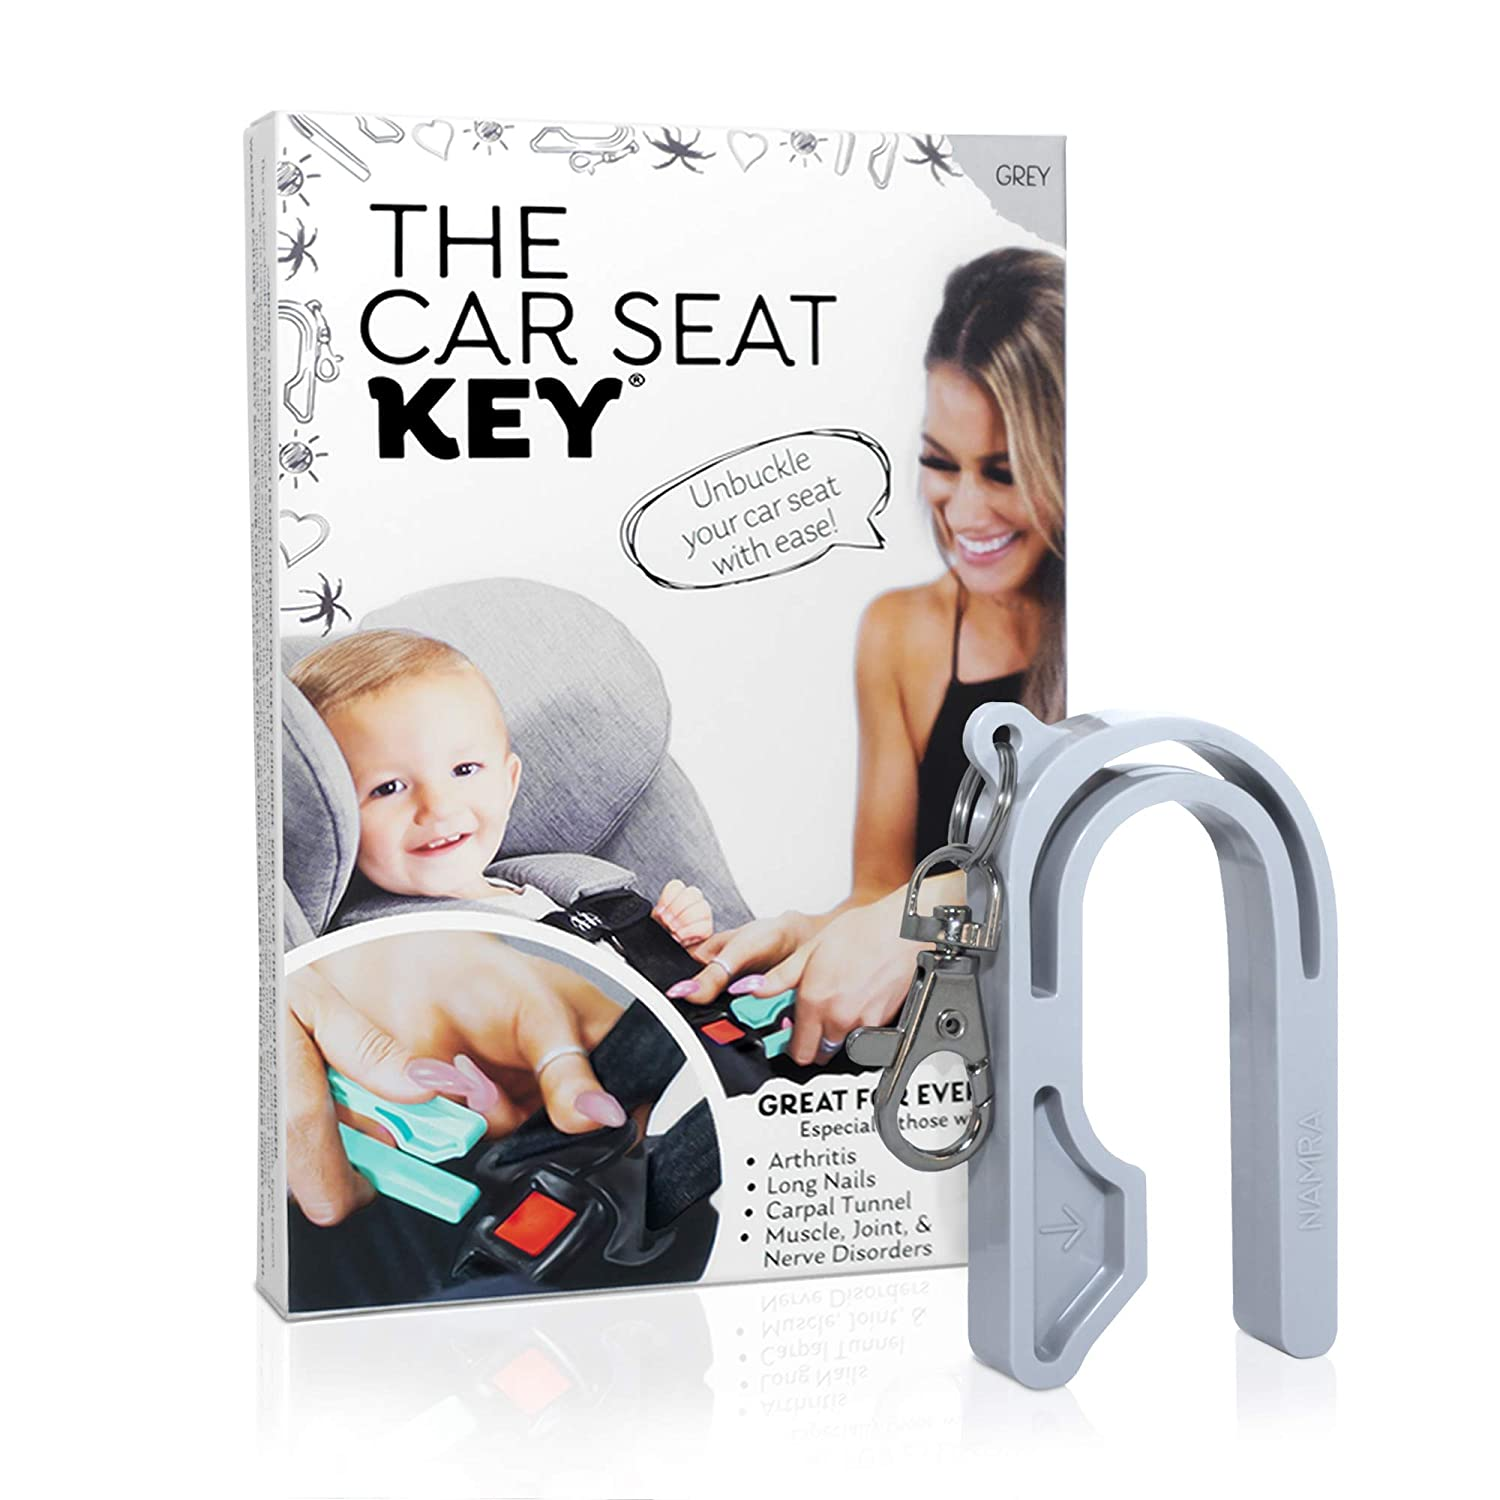 The Car Seat Key - Easy CAR SEAT UNBUCKLE by NAMRA Made in USA (Grey)